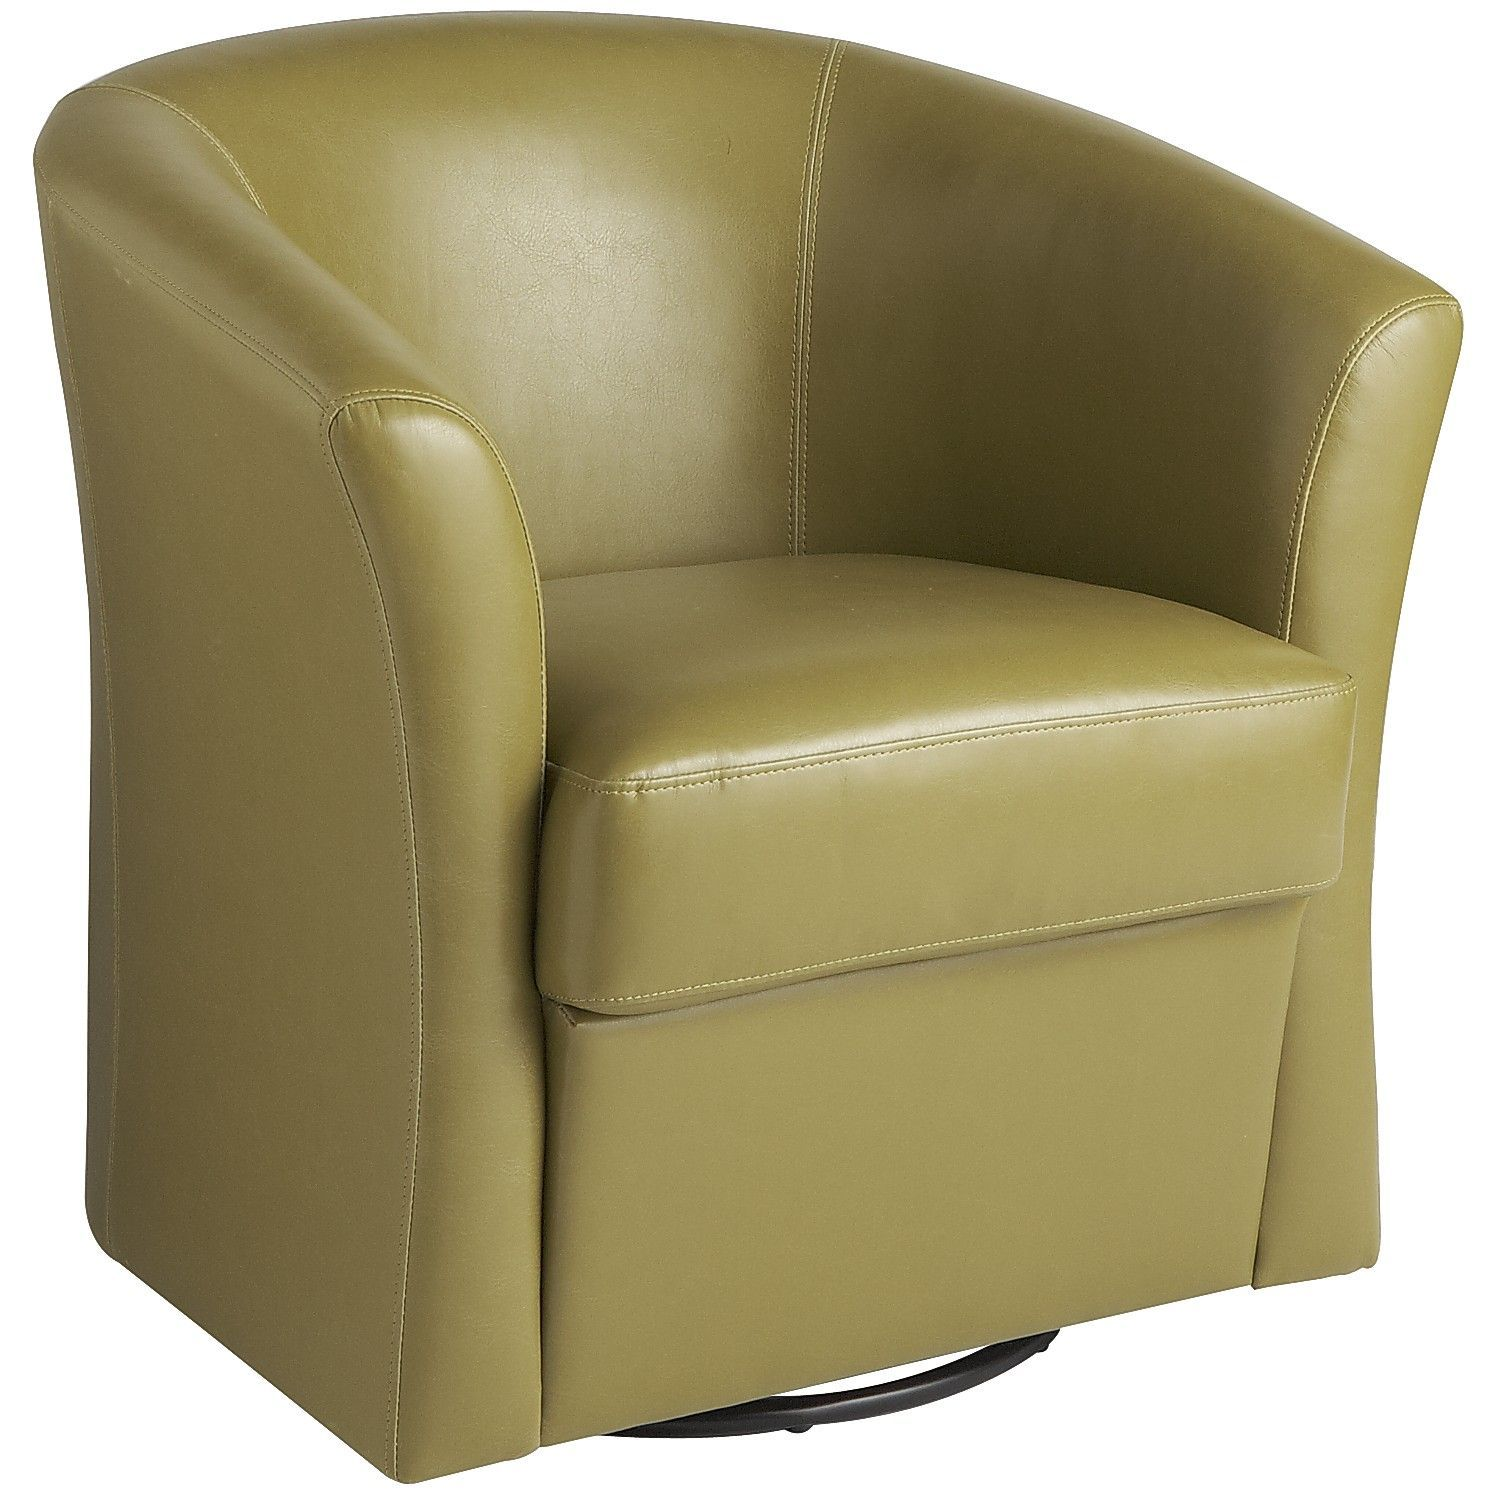 Isaac Swivel Chair Avocado Pier1 Us Also Available In Ivory